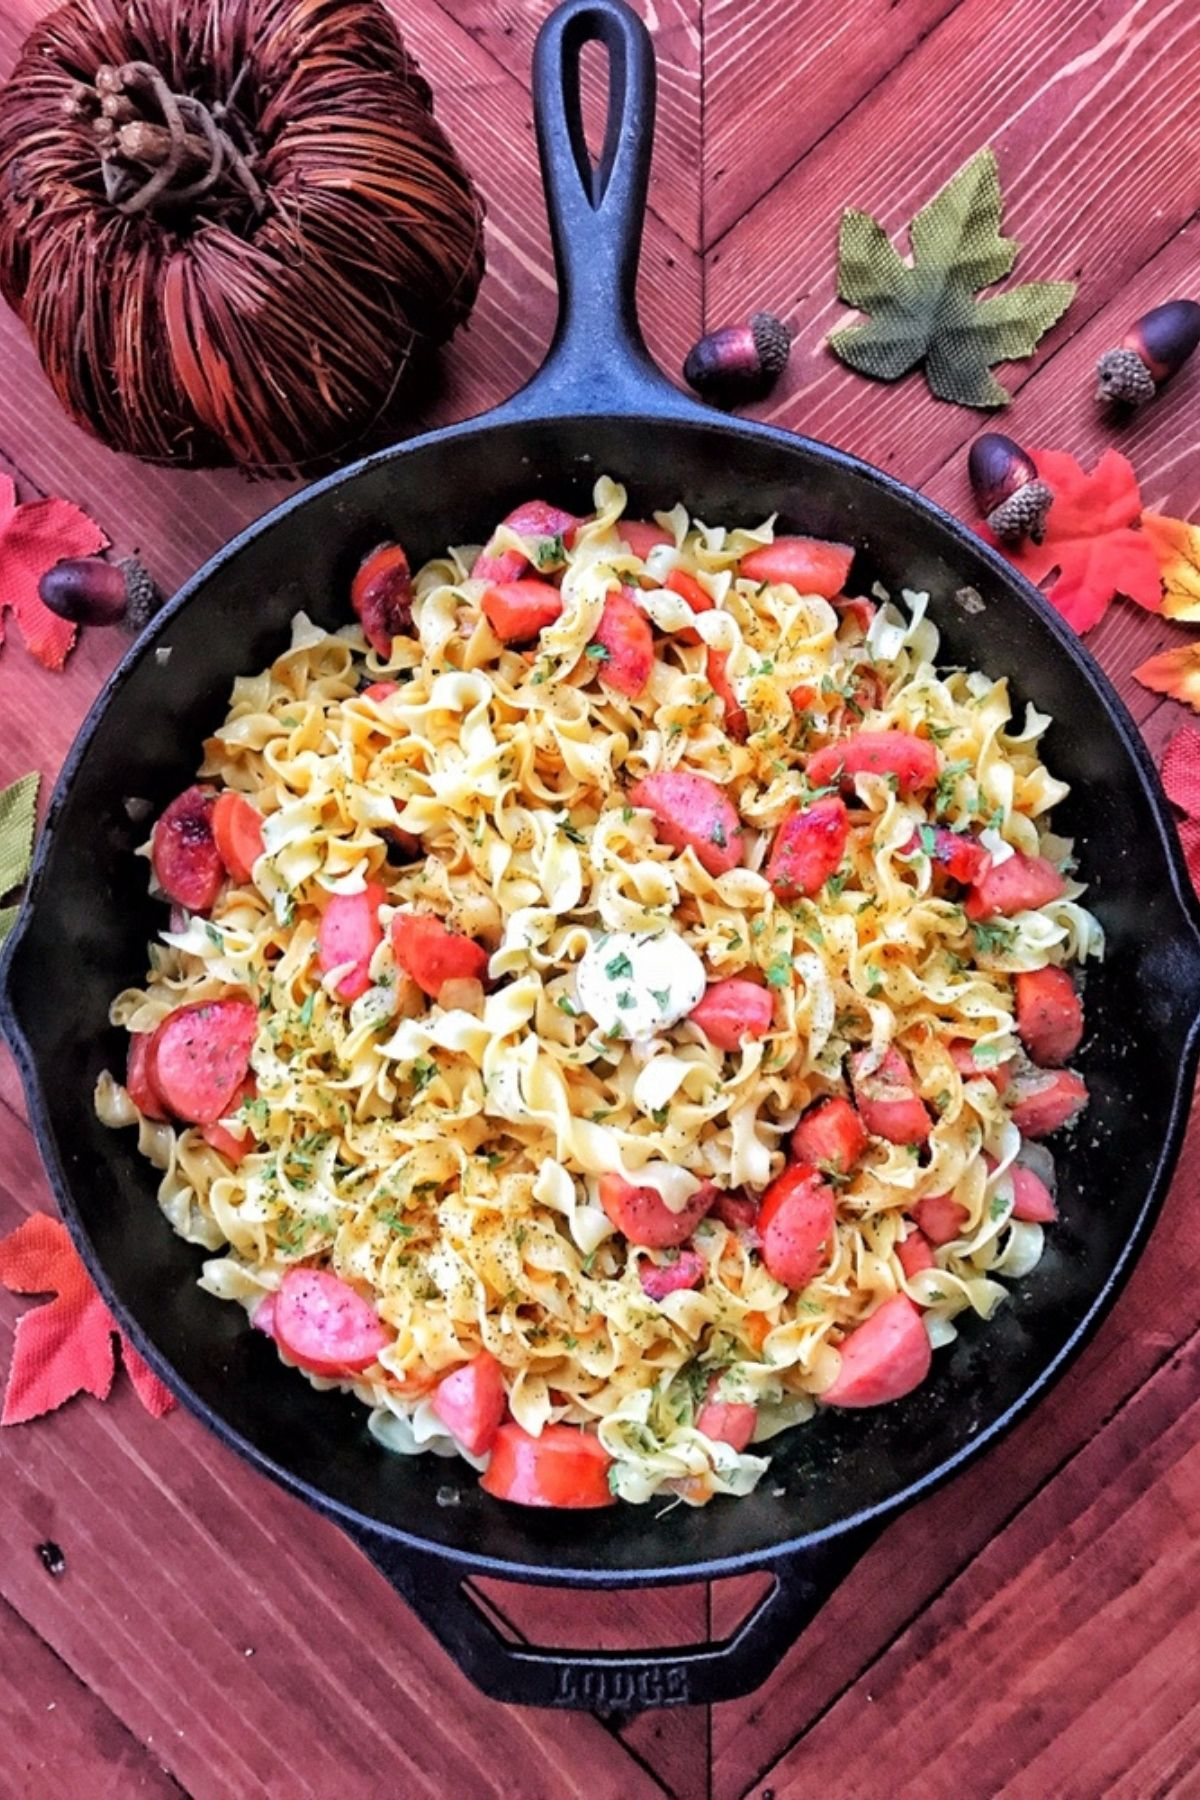 Cast iron skillet with sausage and egg noodles on red table